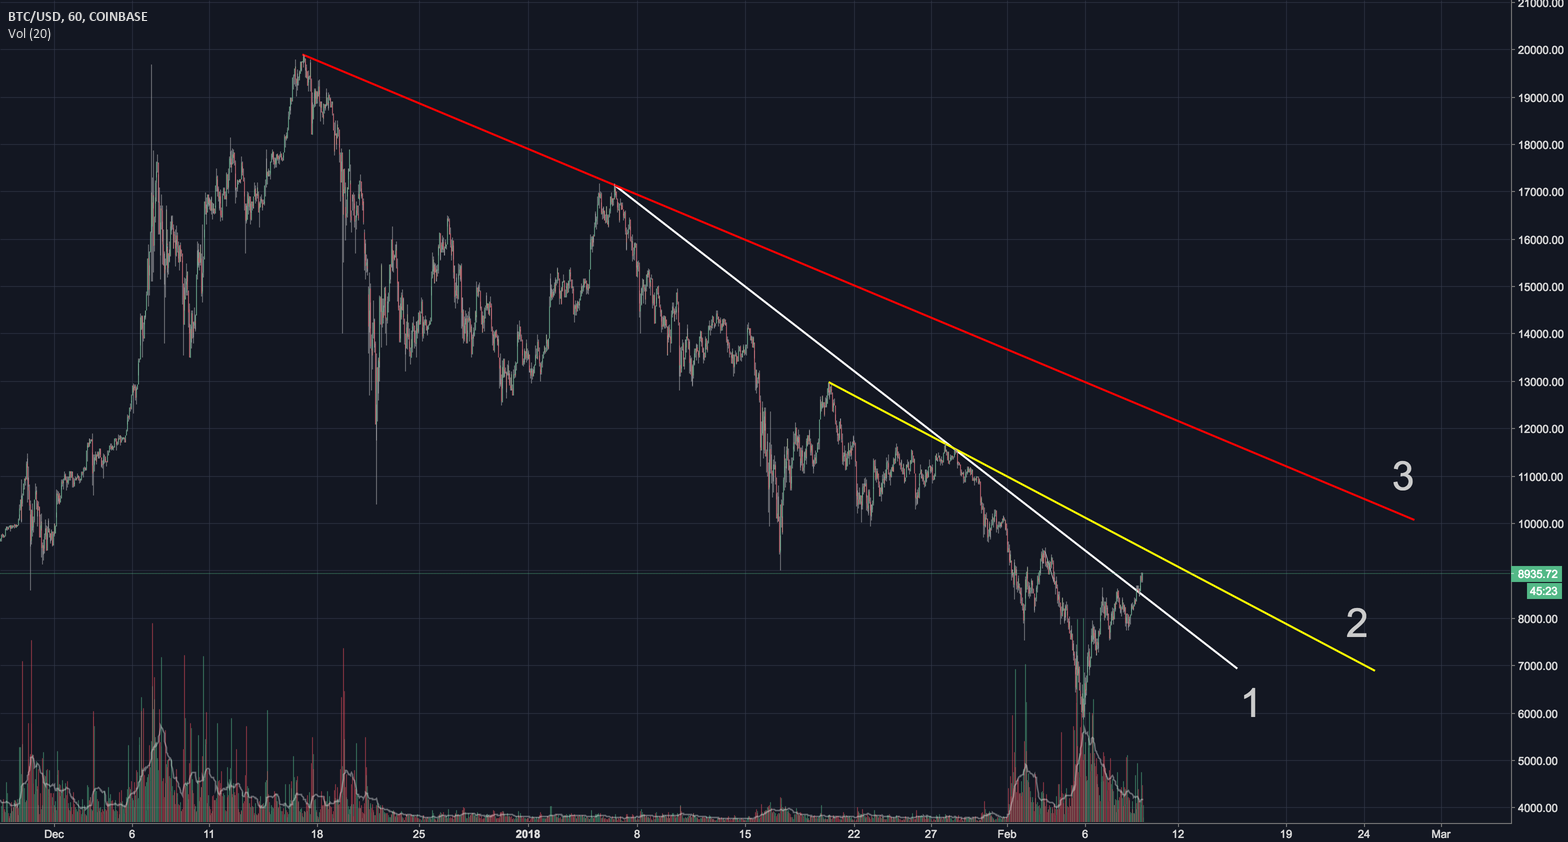 3 downtrend lines to fight with $BTC